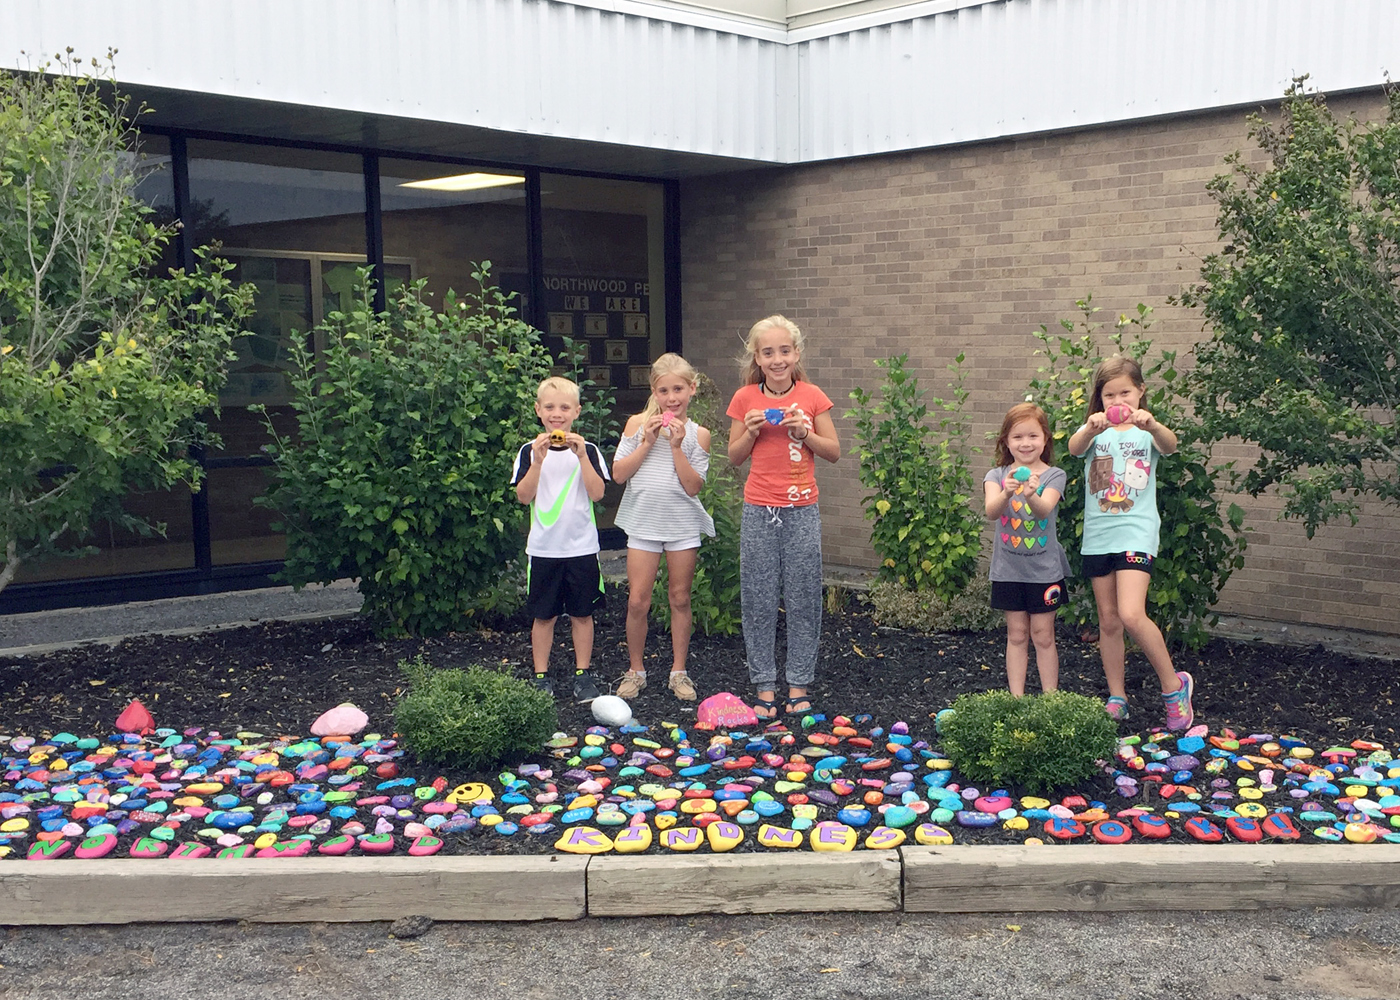 Northwood Elementary School students (l-r) Cole, Madison and Lucy Murphy, and Gianna and Makayla Pignagrande in their school's Kindness Rocks garden. Provided photo